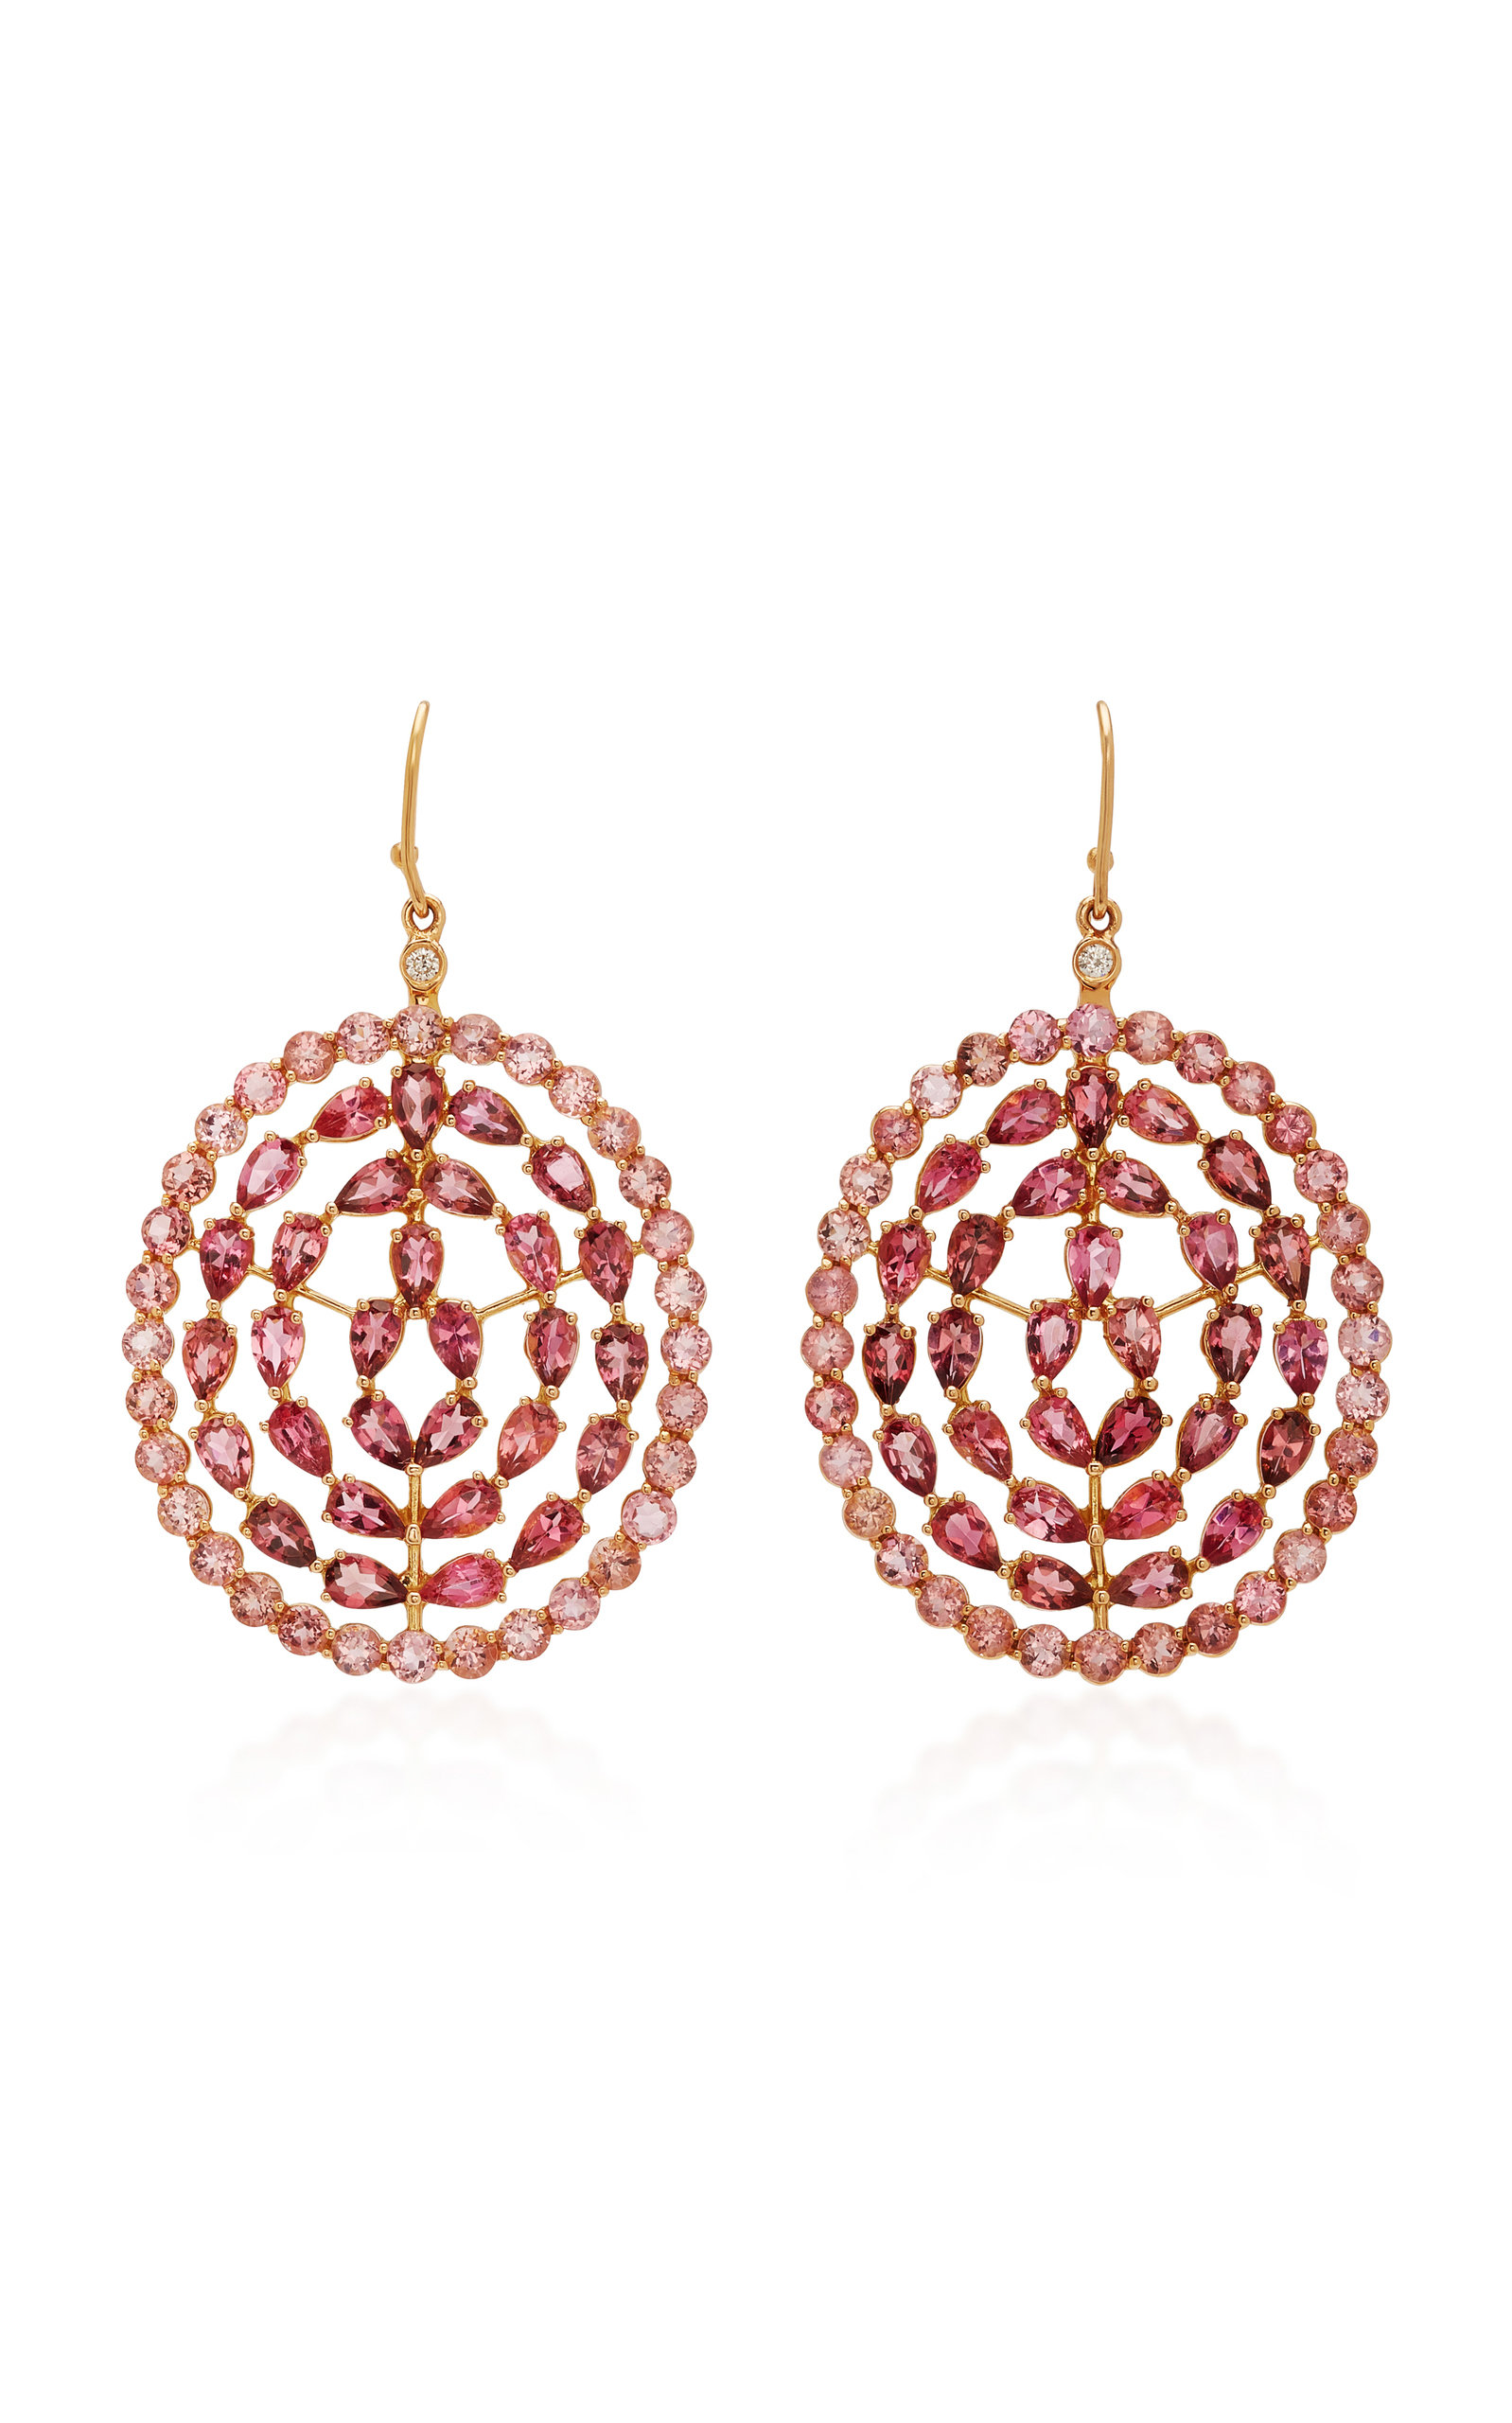 Misahara Plima Prime 18k Rose Gold And Tourmaline Earrings In Pink